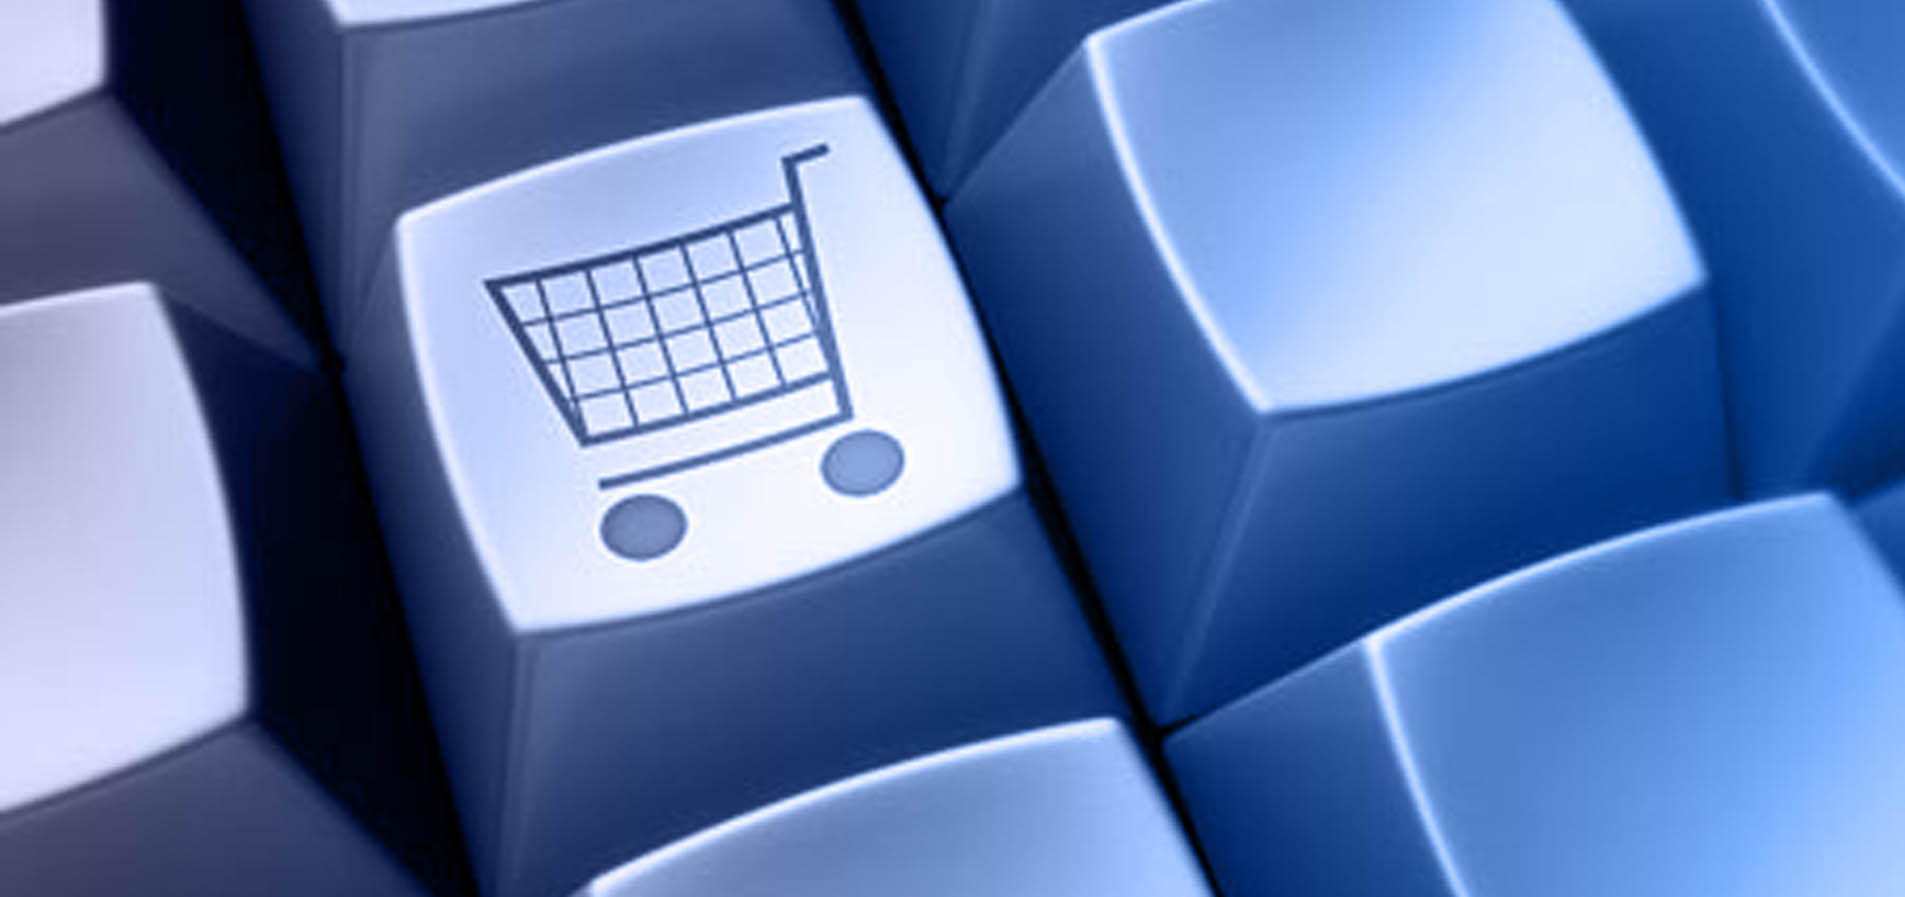 e-commerce-acquirente-ideale